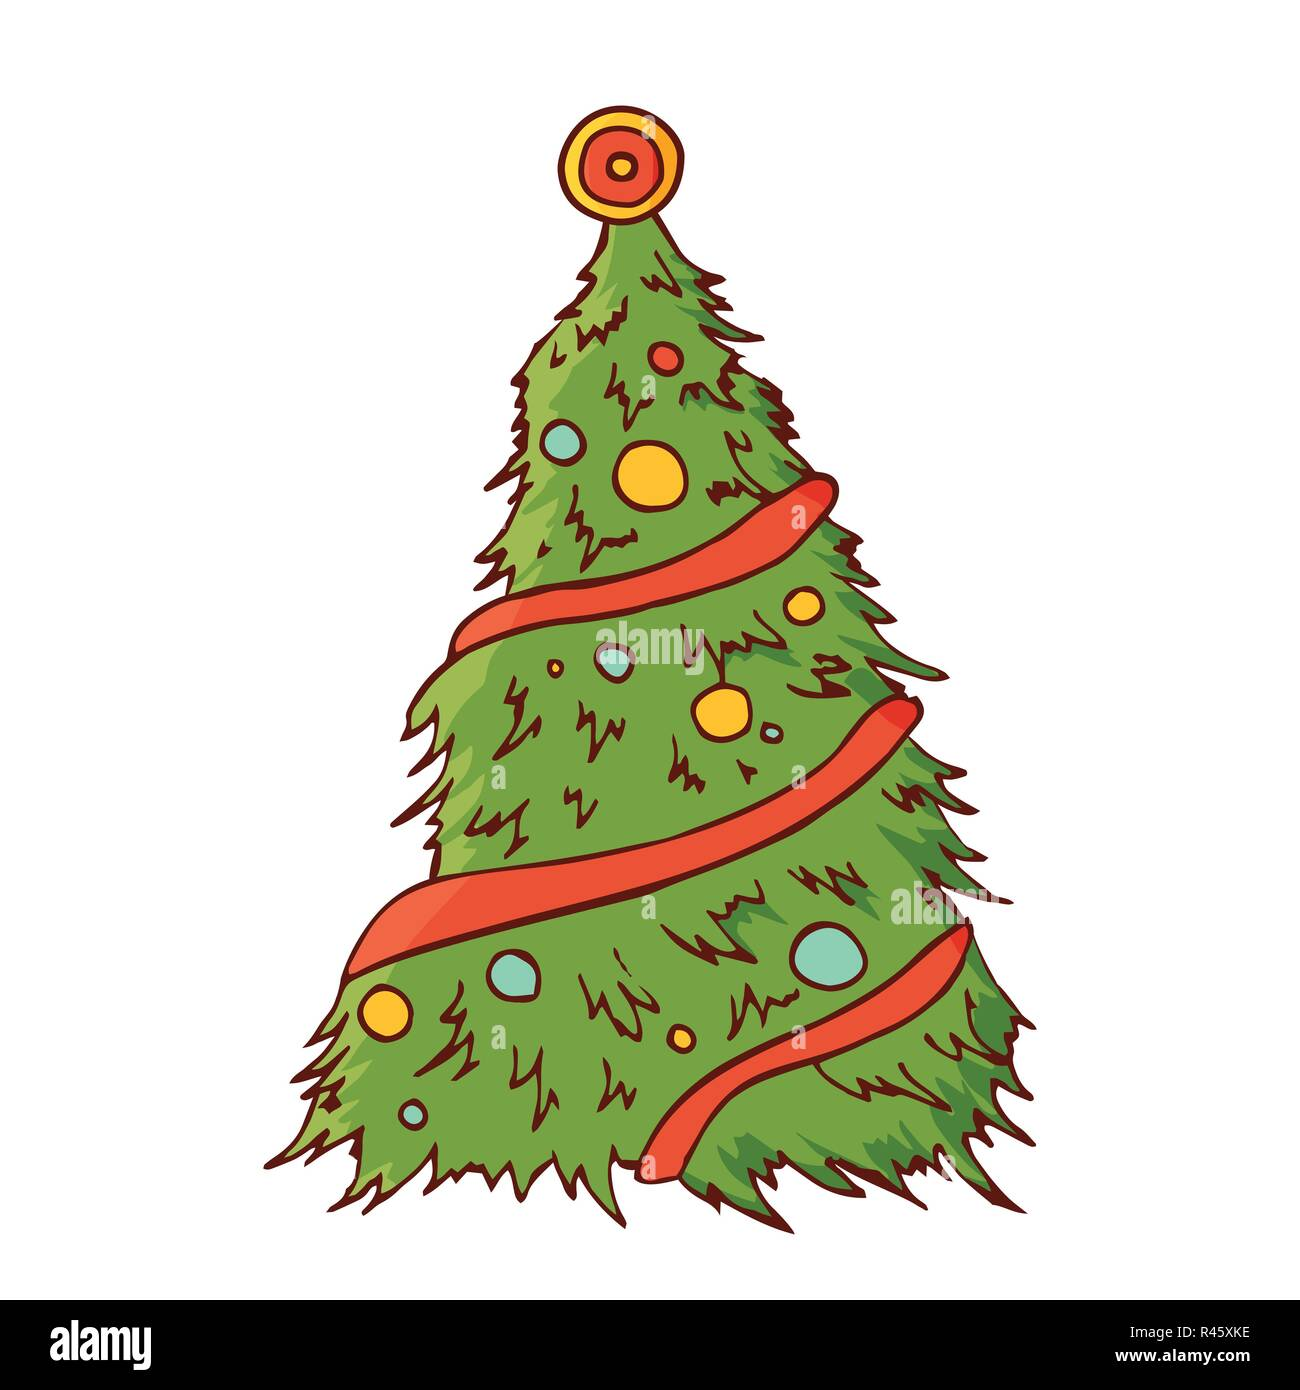 Christmas Tree Vector Vectors Stock Photos & Christmas Tree Vector ...